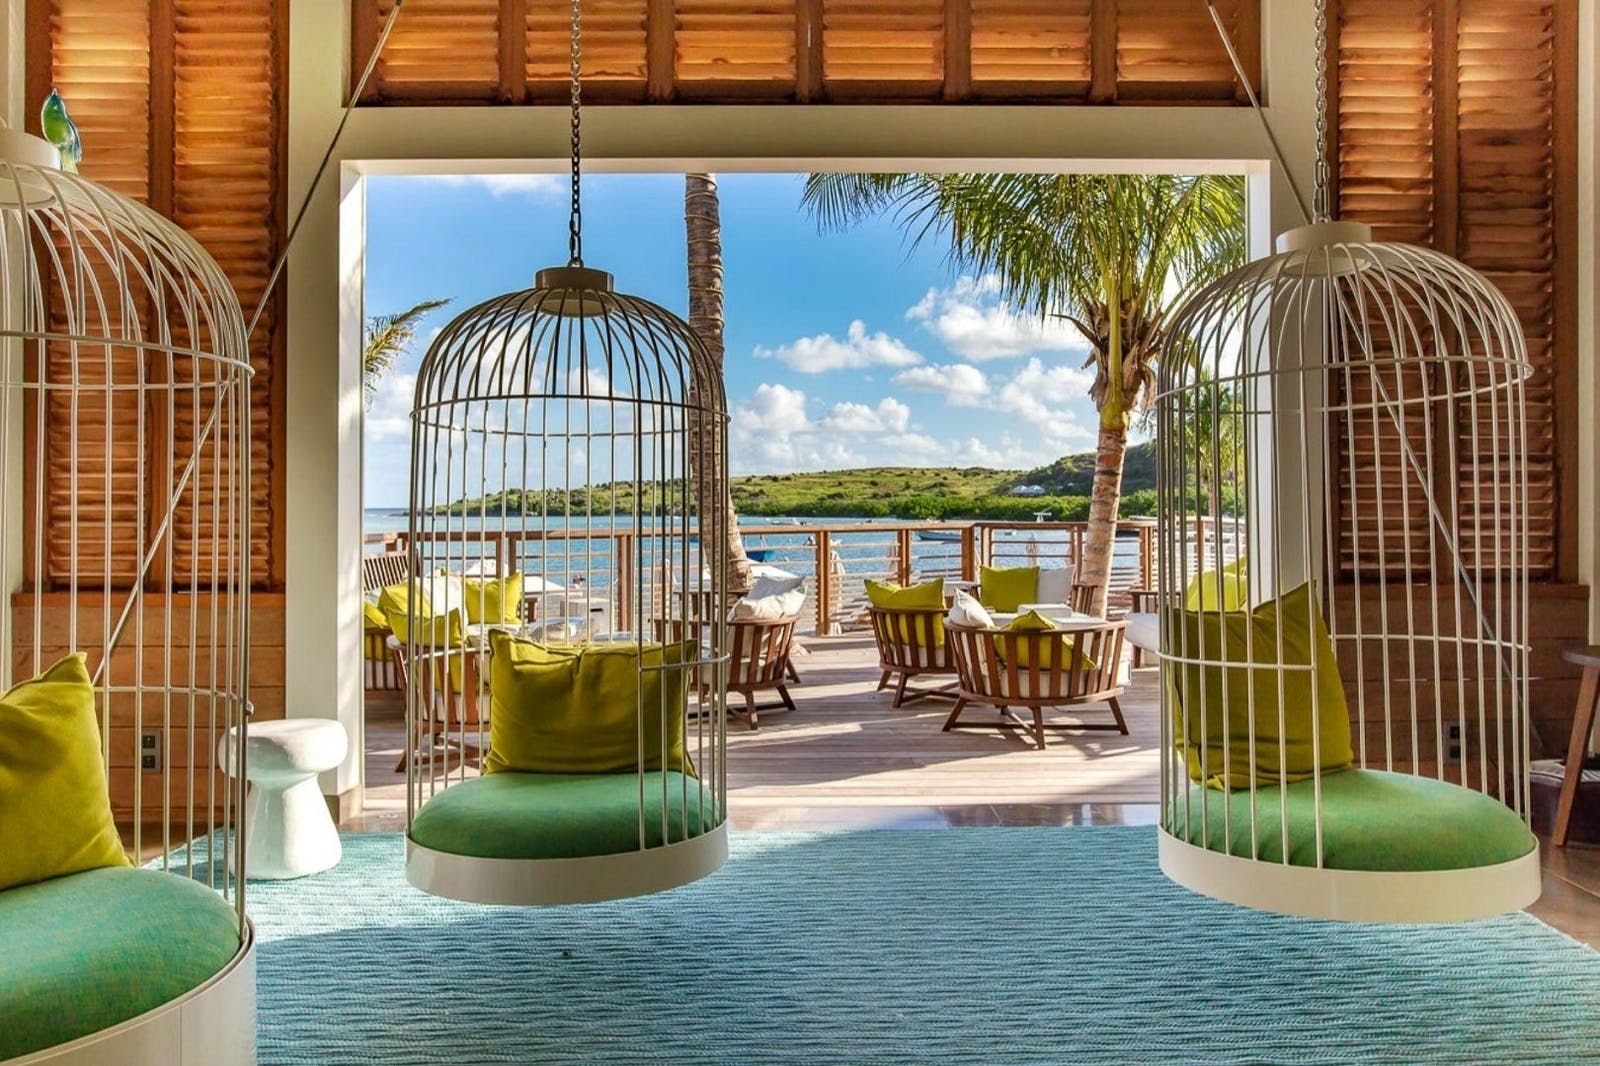 Welcome Pavilion at Le Barthelemy Hotel Spa